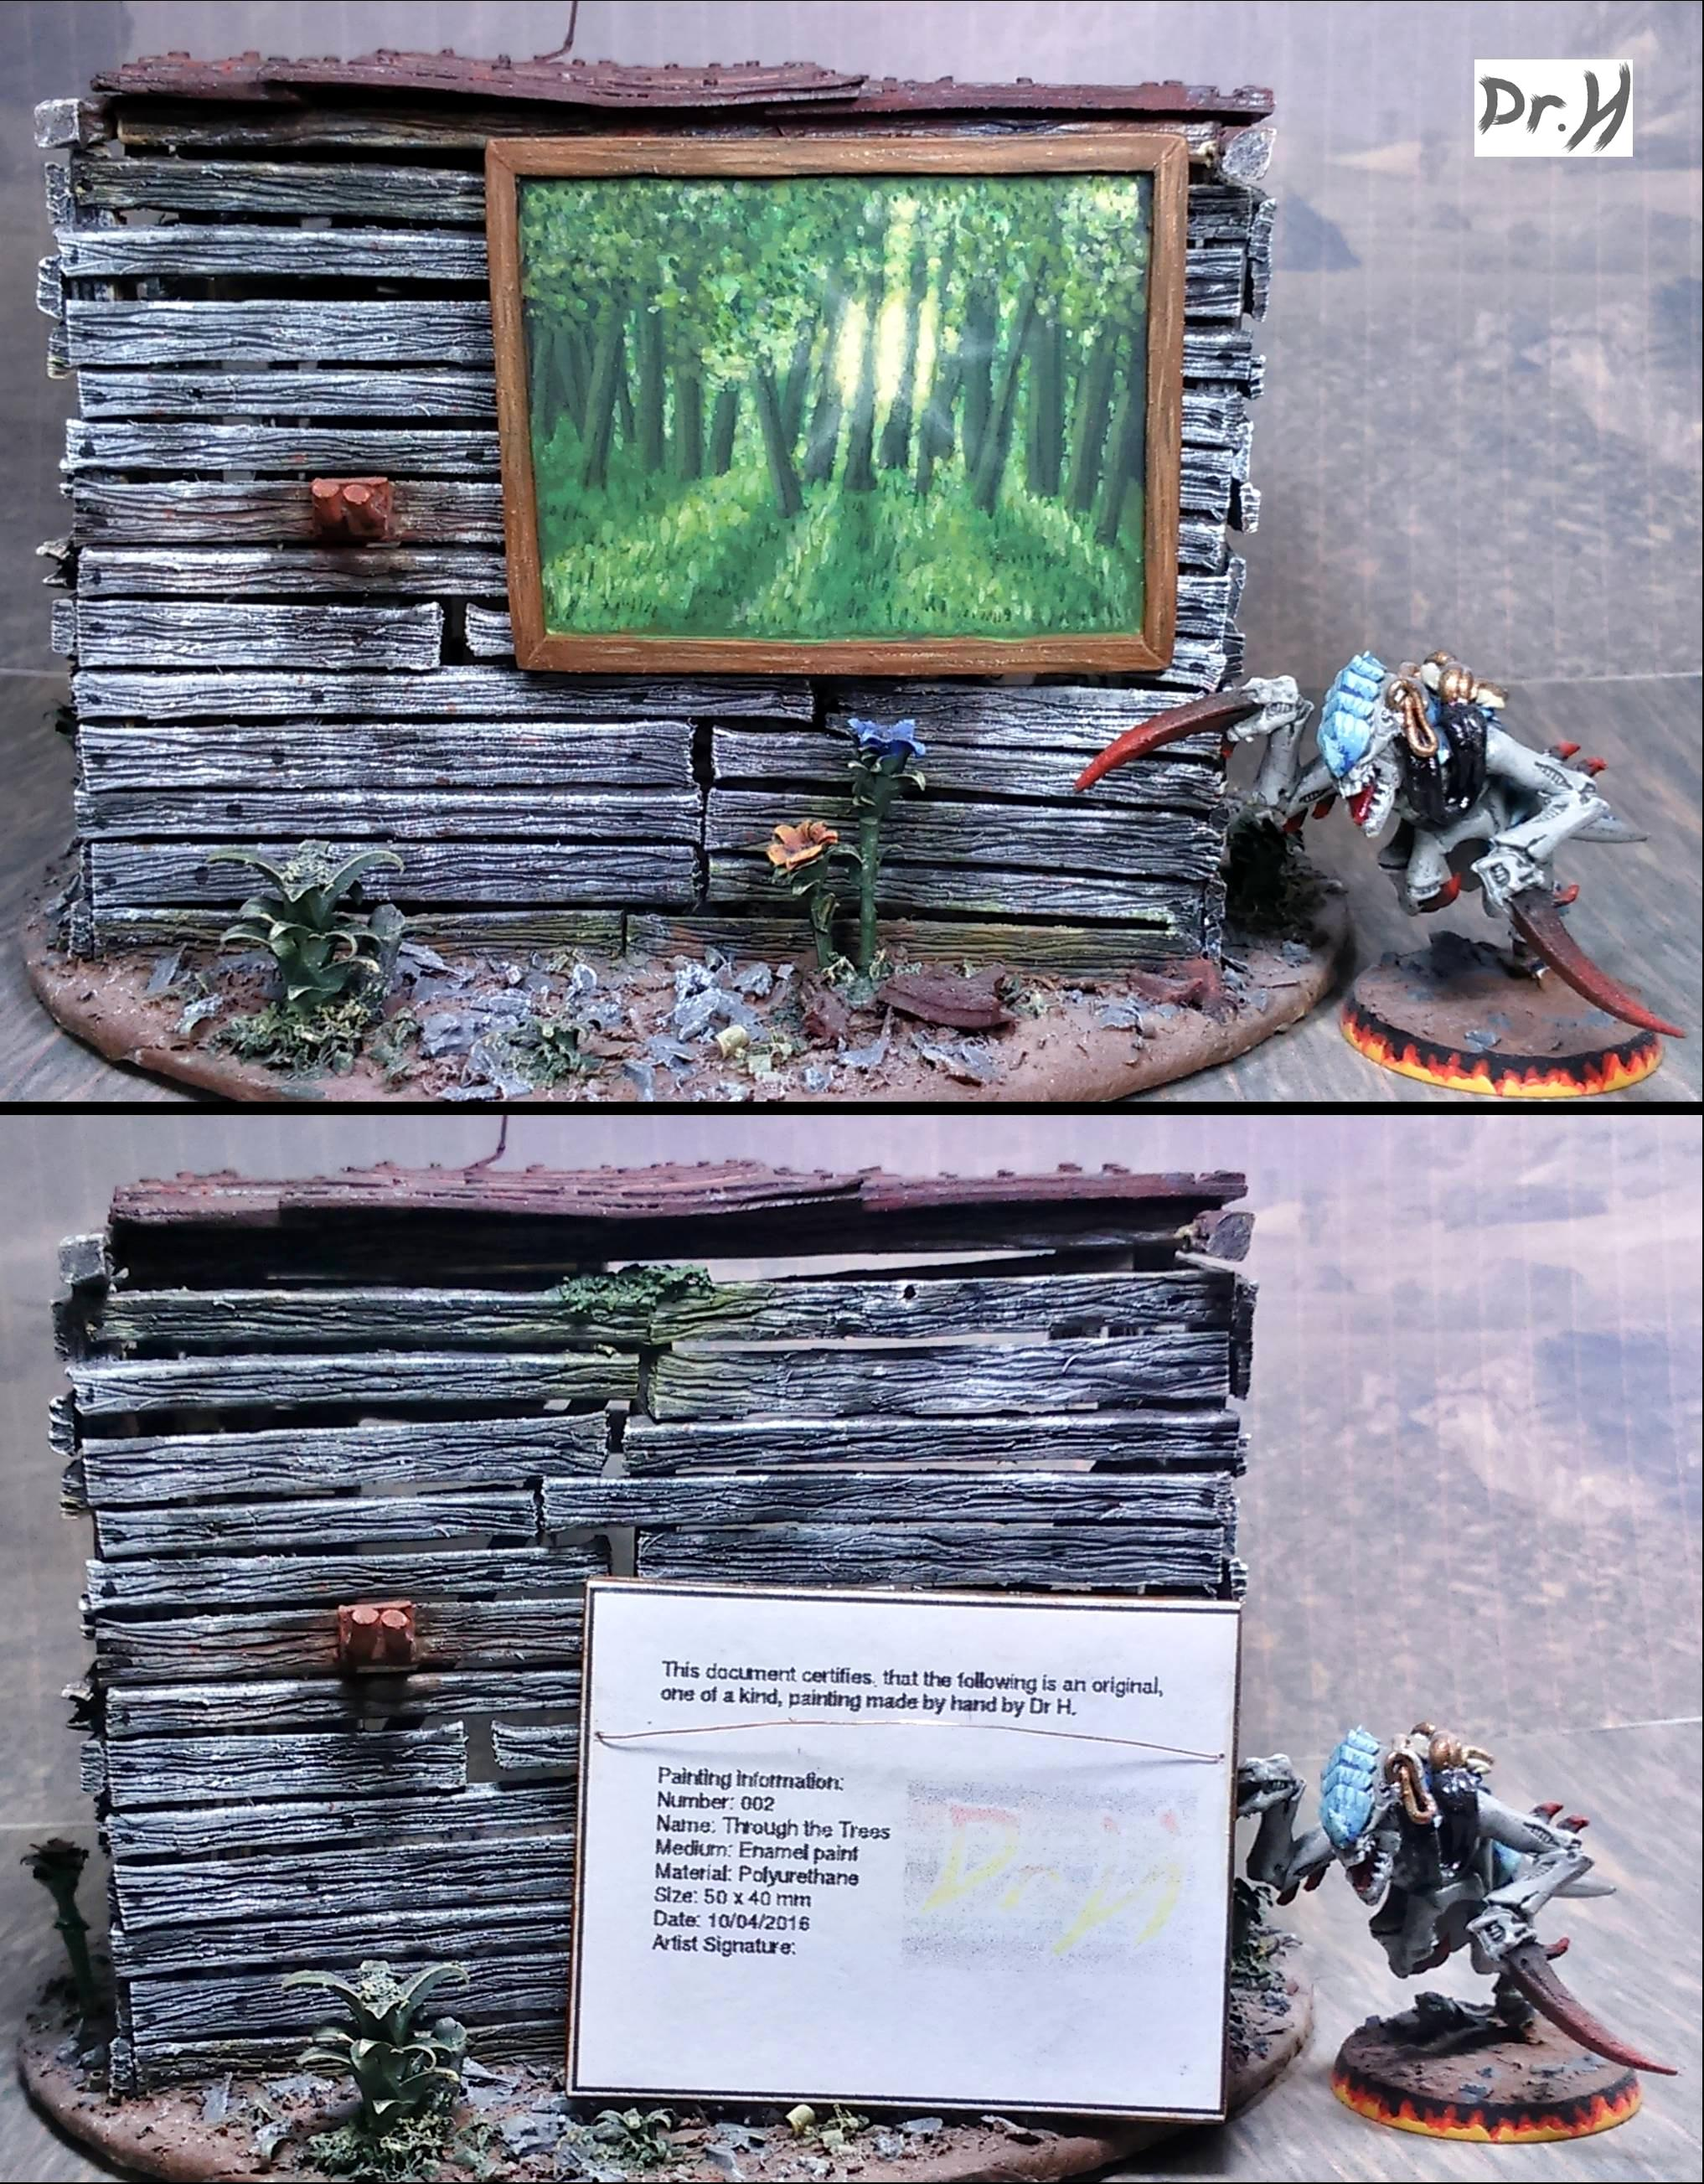 1:12th scale painting: Through the Trees